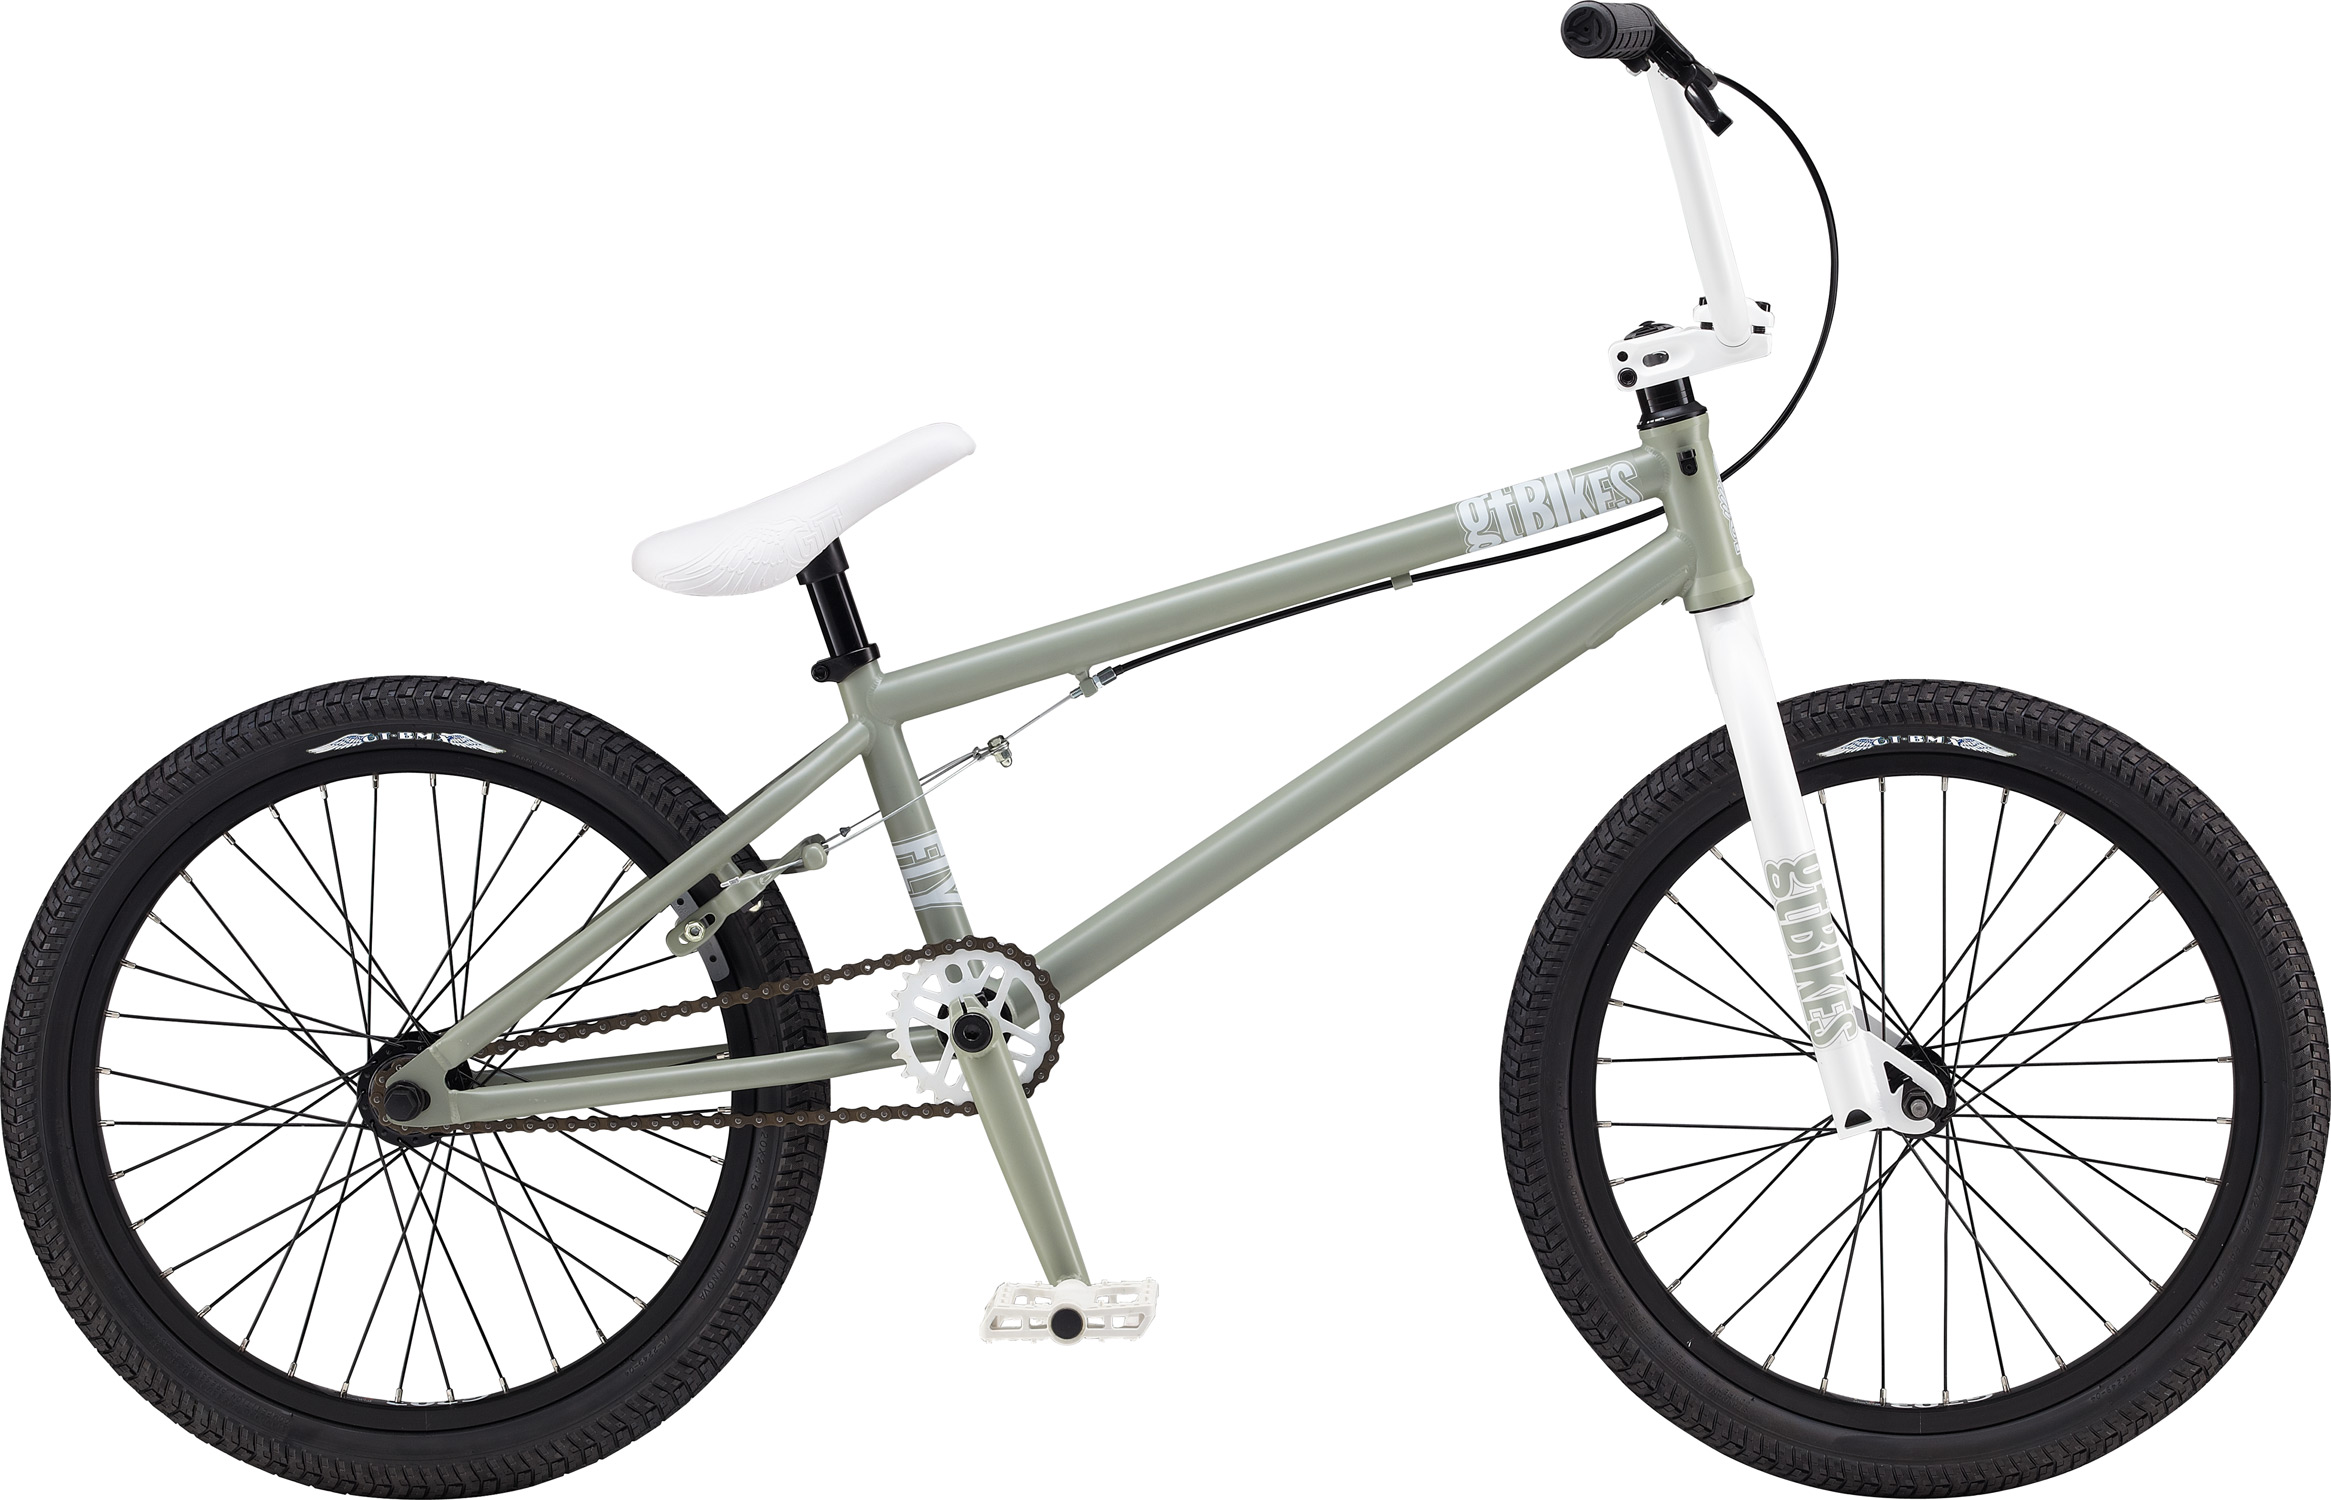 "BMX Key Features of the GT Fly BMX Bike 20"": Frame: NEW Straight Gauge, Hi-Ten, Dumped C/S, Triple Triangle, 14mm Dropouts, S/S Mounted Brake Mounts, W/ Removable Rotor Tabs Front Suspension: GT, Cro-Mo Steerer/ Hi-Ten, 31.8-28.6 Taper, 3/8, 1 1/8"" Brakes: Tektro FX340R Crankset: GT 3 Pcs, 8T, 170mm 25T Wheels/Hubs: KT AL Cassette Loose Ball 3/8""F,14mmr 32F, 36R Hole - $229.95"